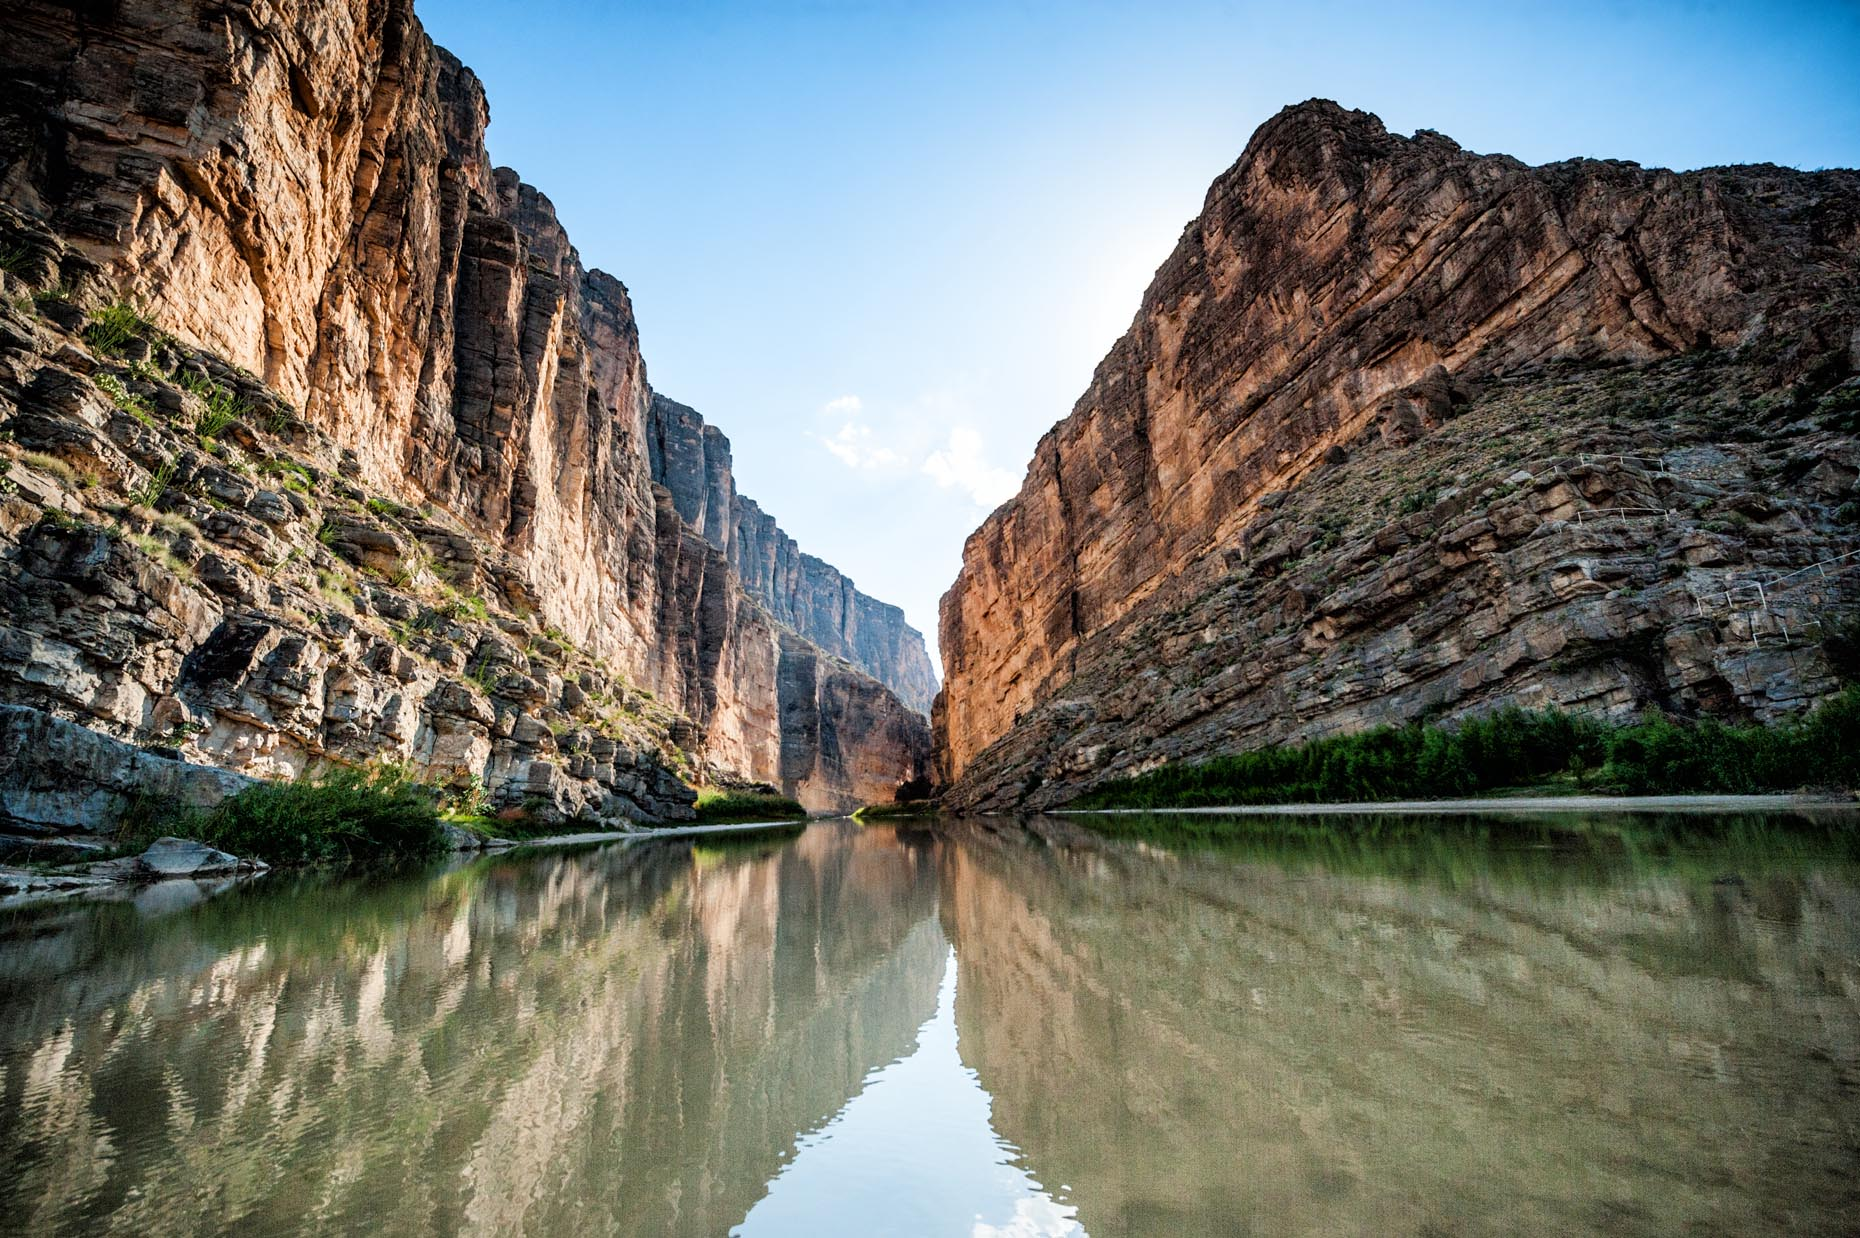 aaron-ingrao-Big-bend-national-park-santa-elena-rio-bravo-texas